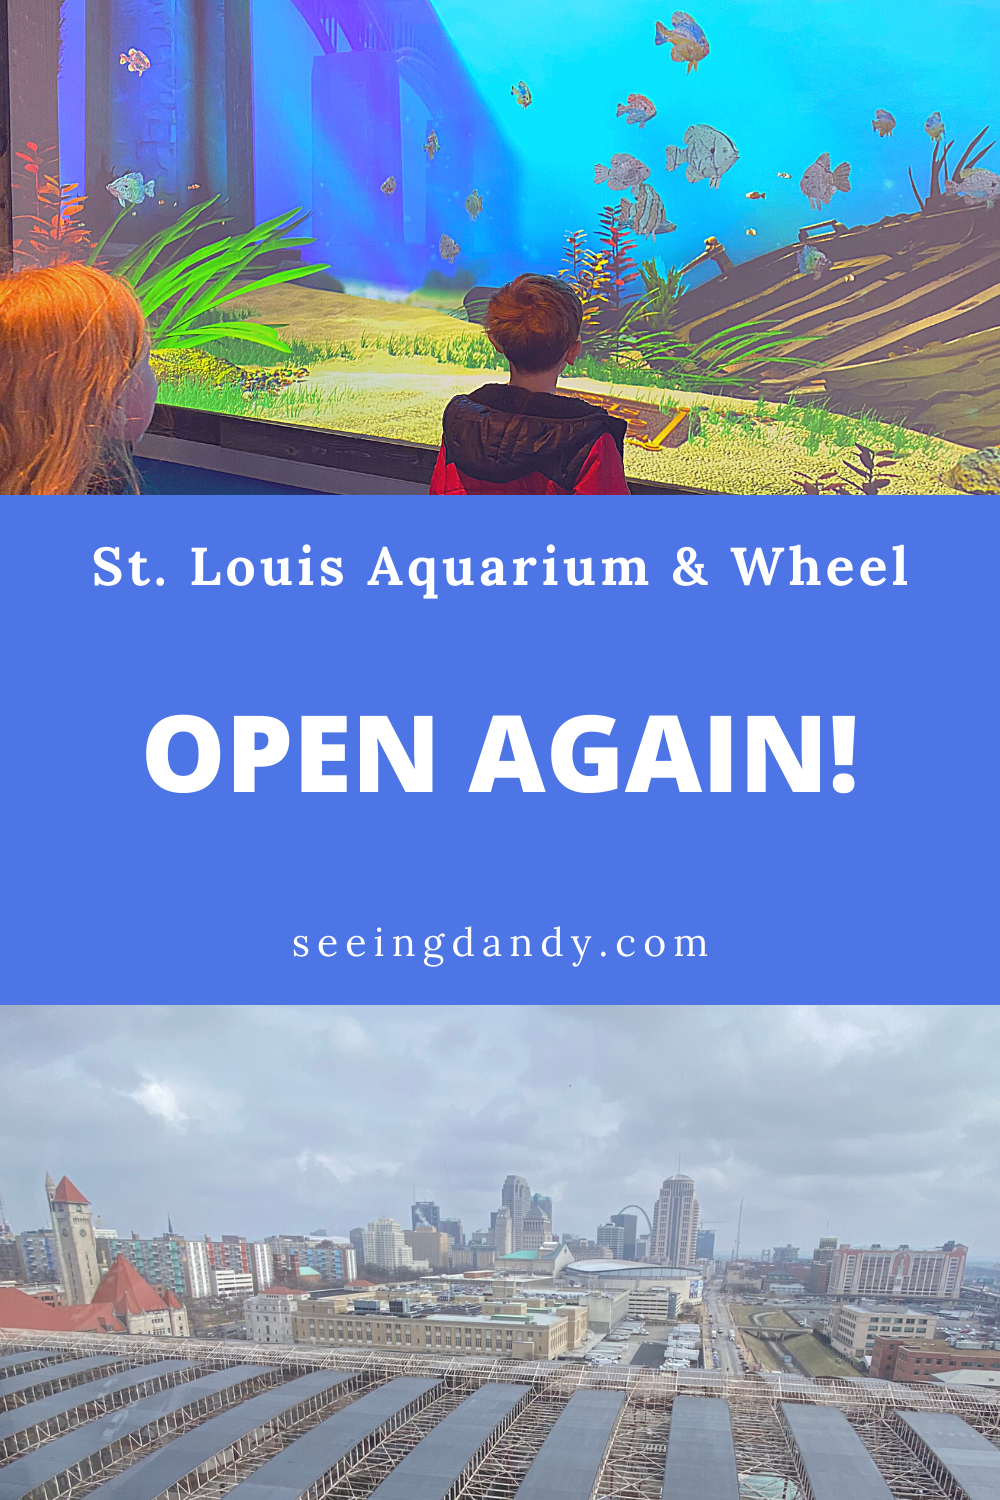 St. Louis Aquarium at Union Station and St. Louis Wheel reopening